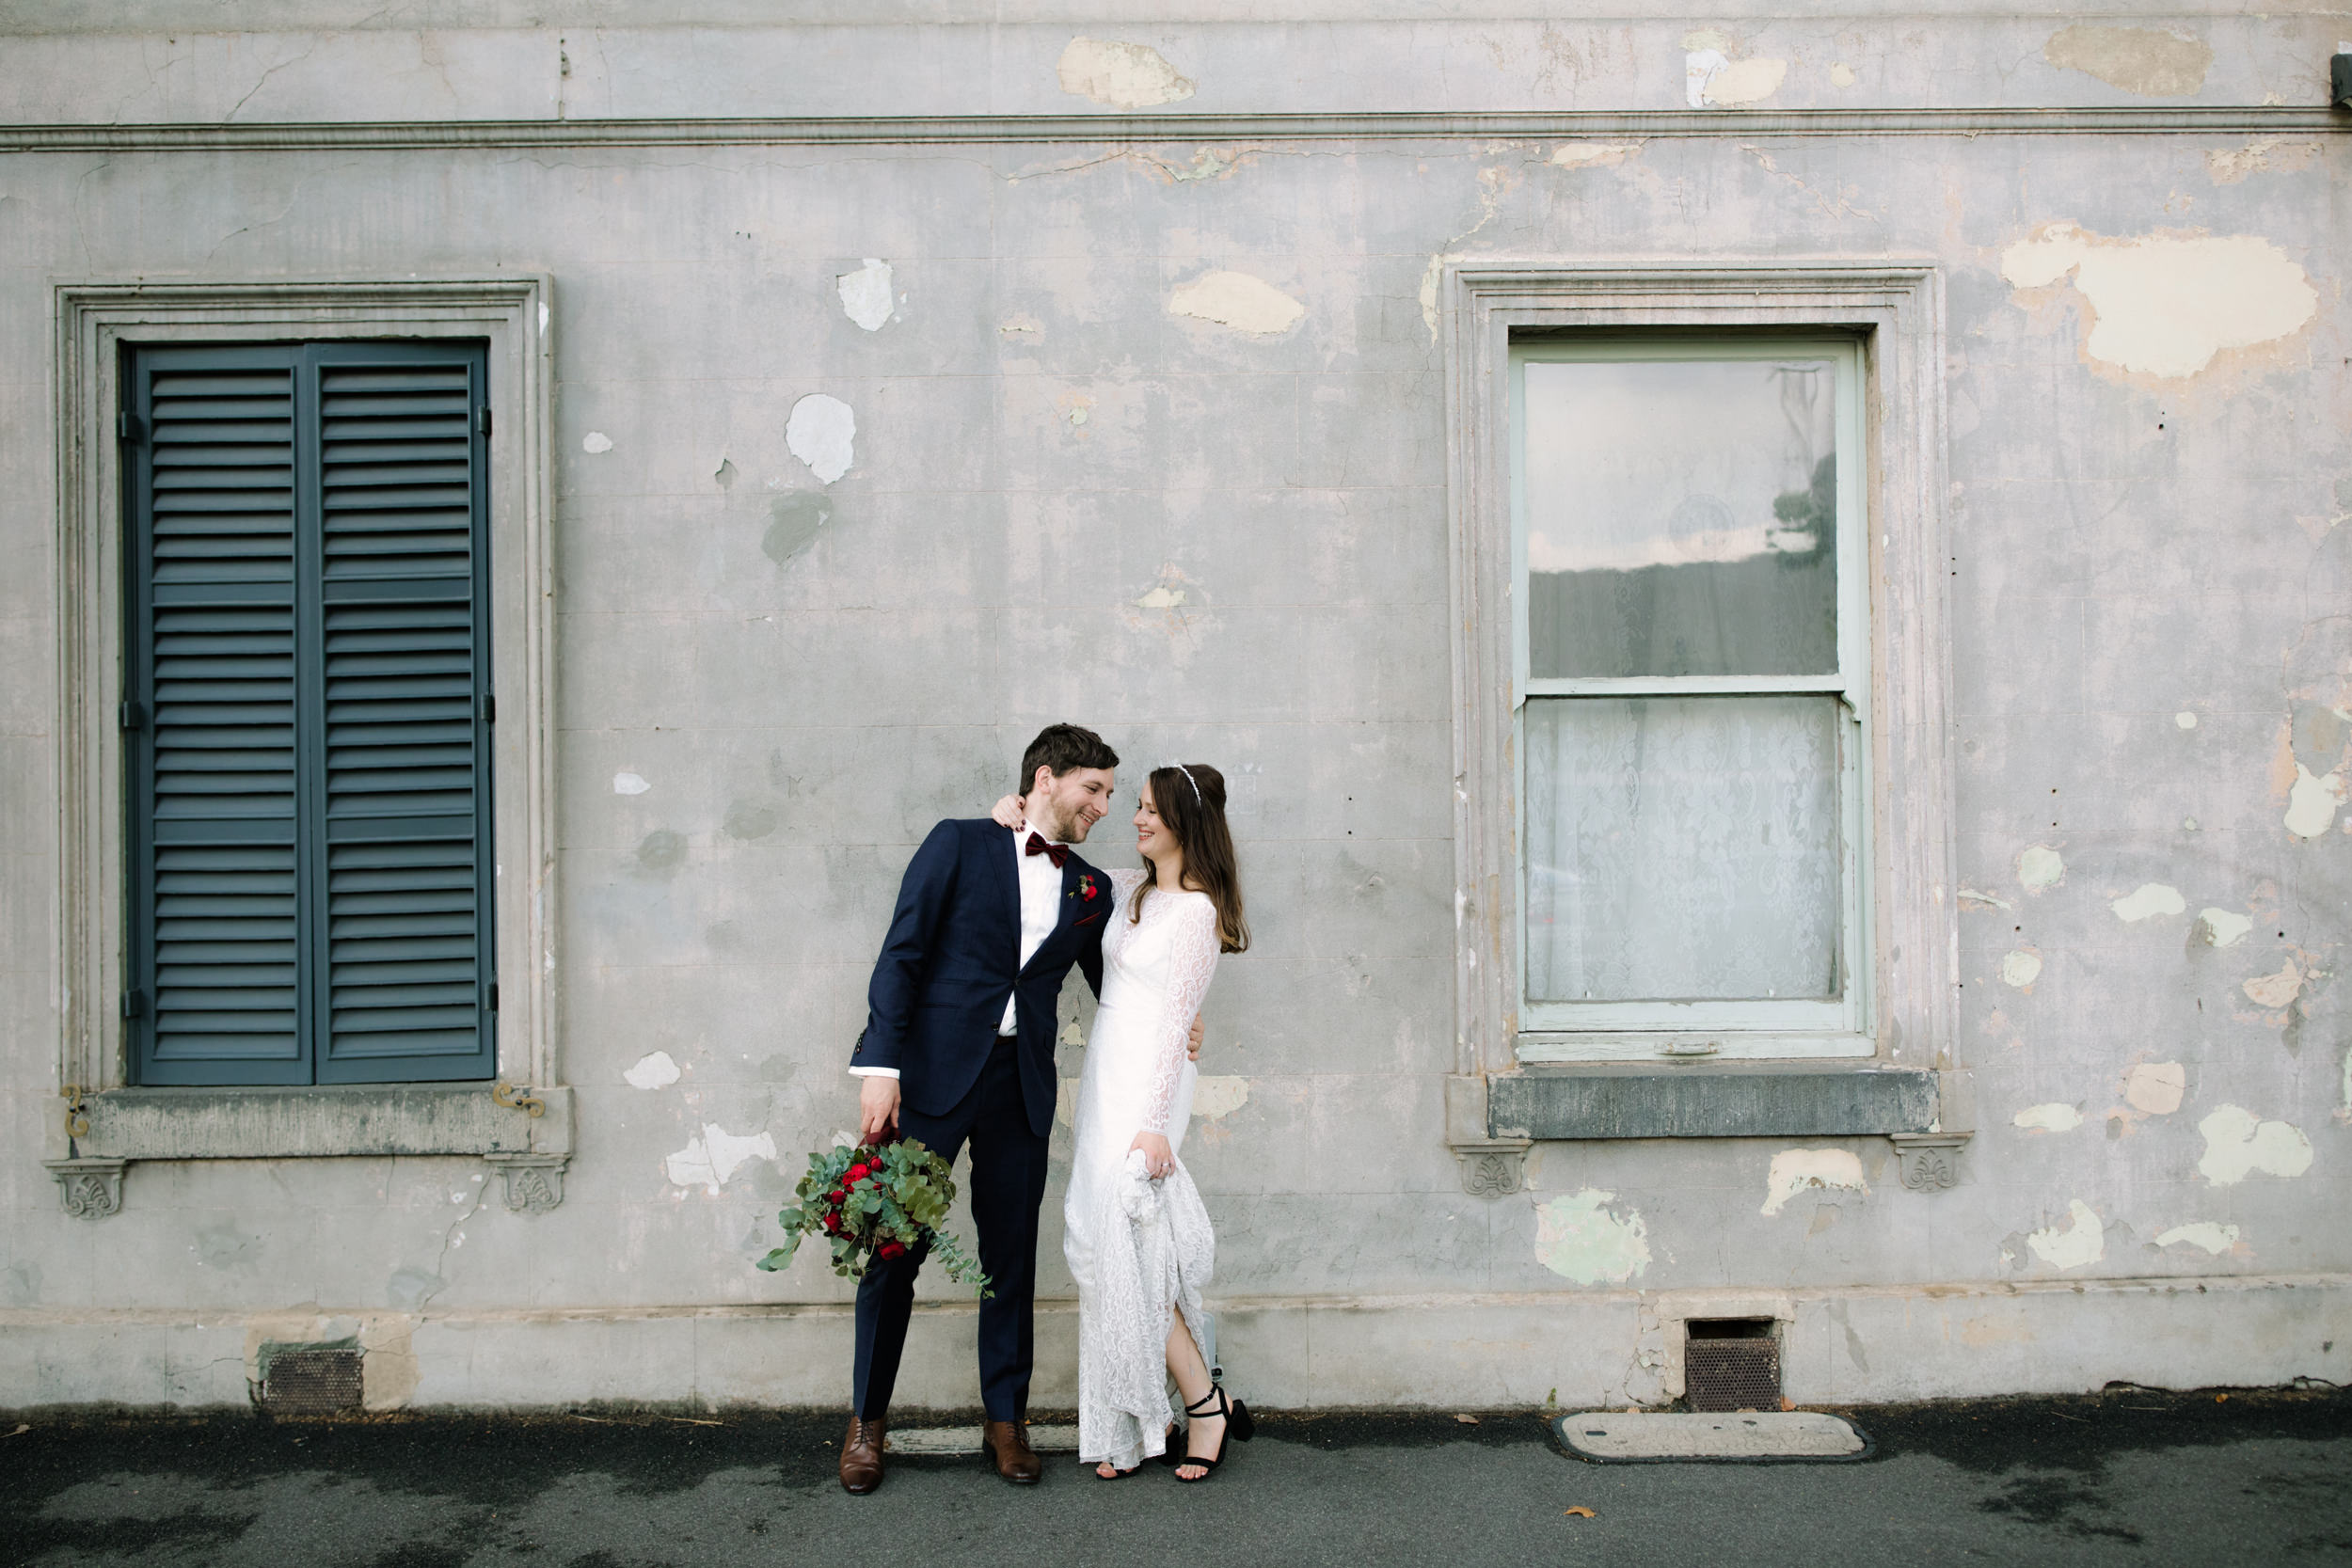 I_Got_You_Babe_Weddings_Emily_Matt_Rupert_Glasshaus_Melbourne0169.JPG